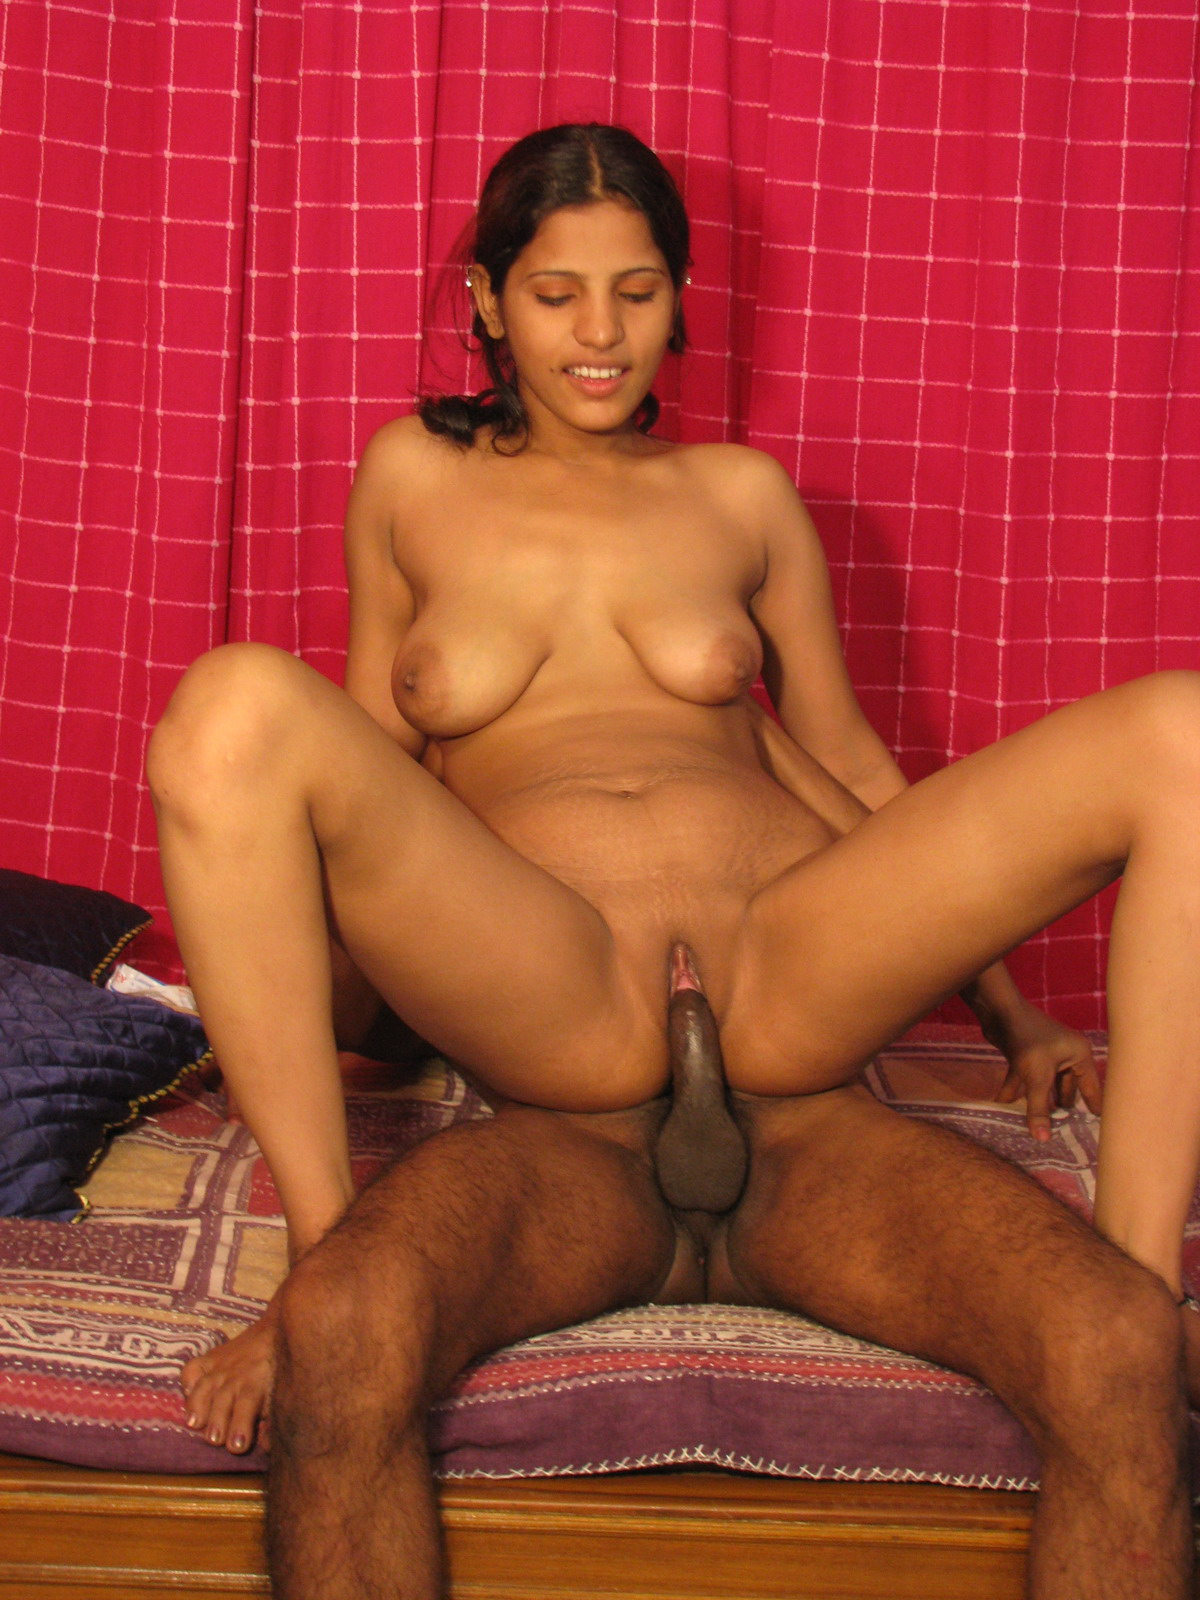 Lad desi girls fucking photos celebforum